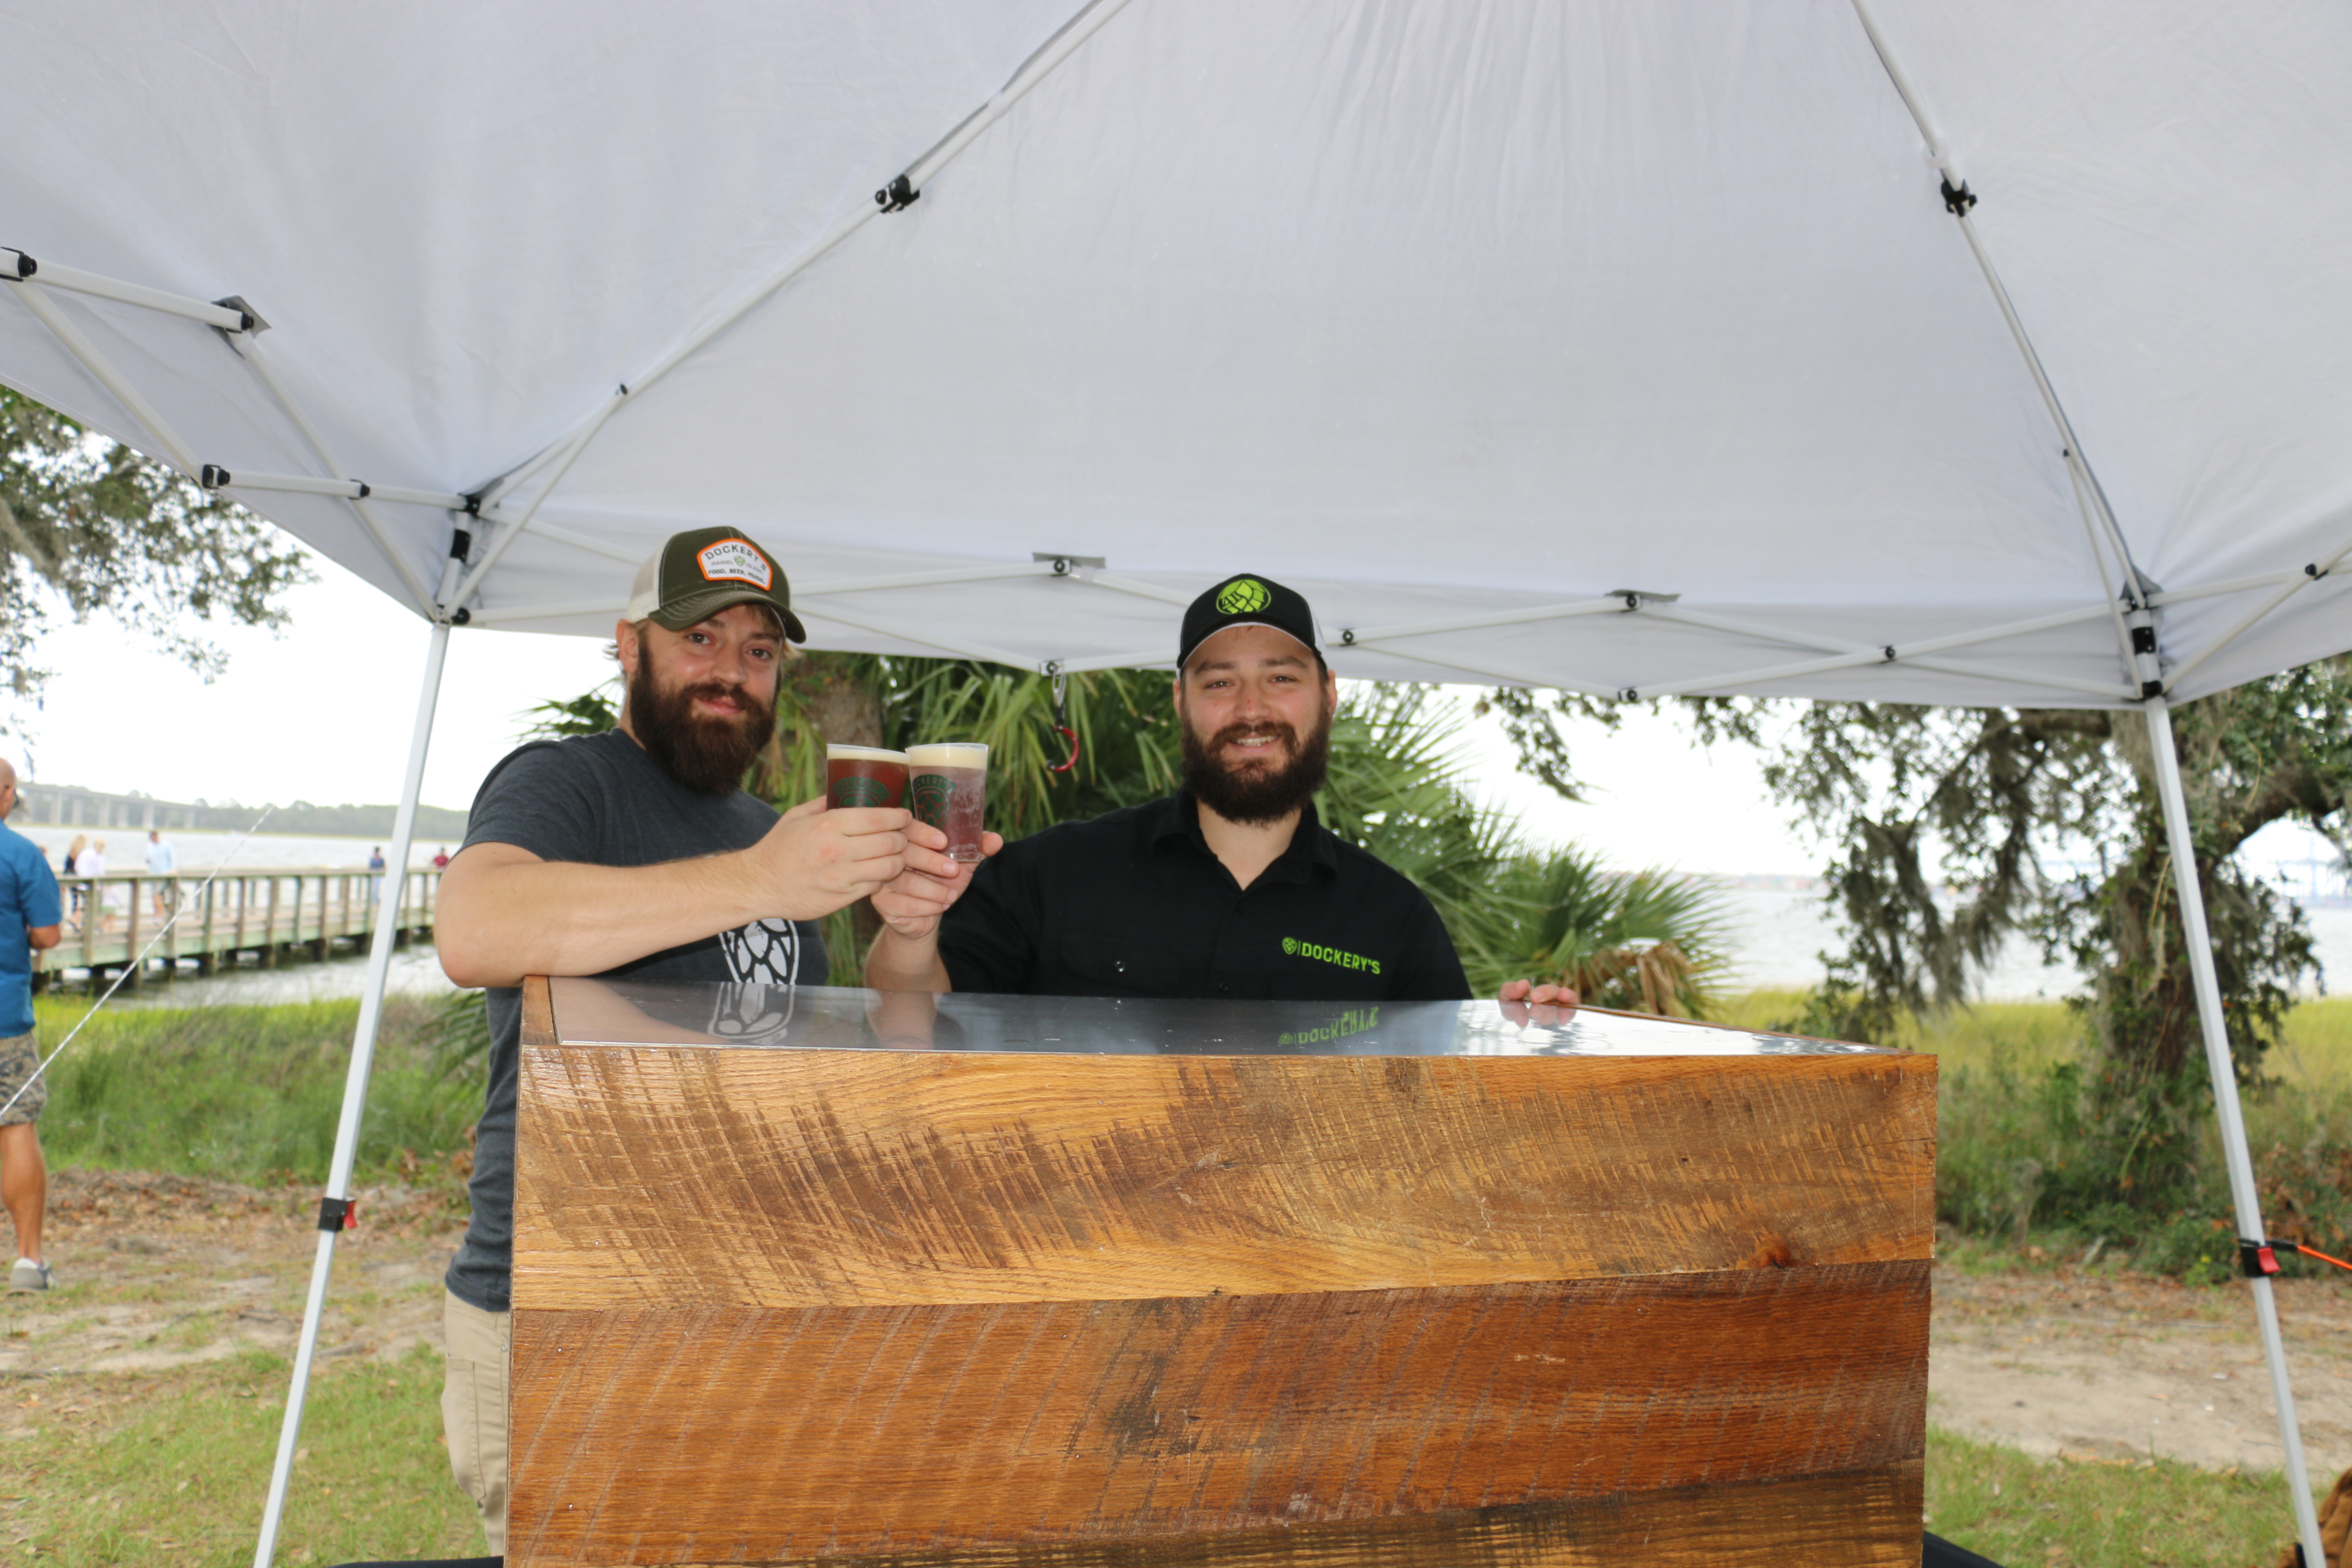 Alex Winney and Greyson Cato serve up a specialty brew from Dockery's.